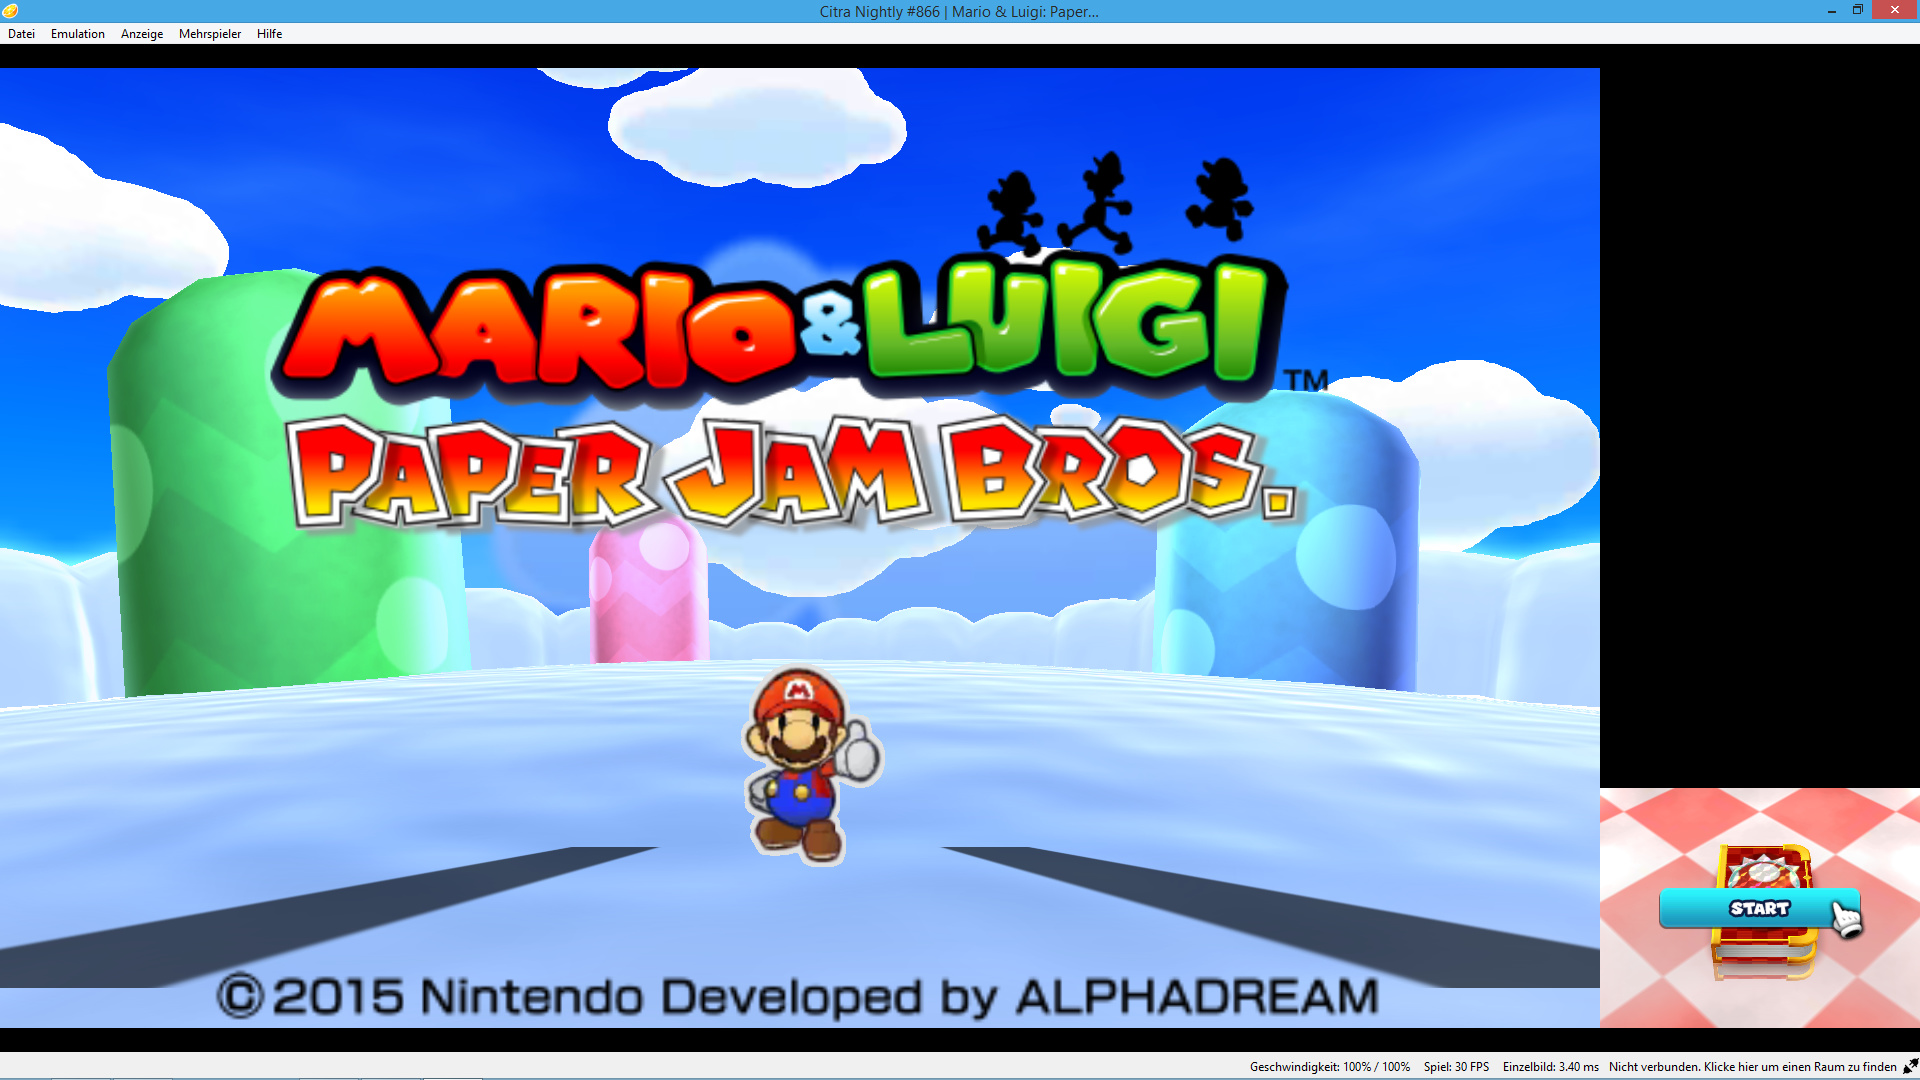 Why Is Everyone Invisible Except Paper Mario In Paper Jam Citra